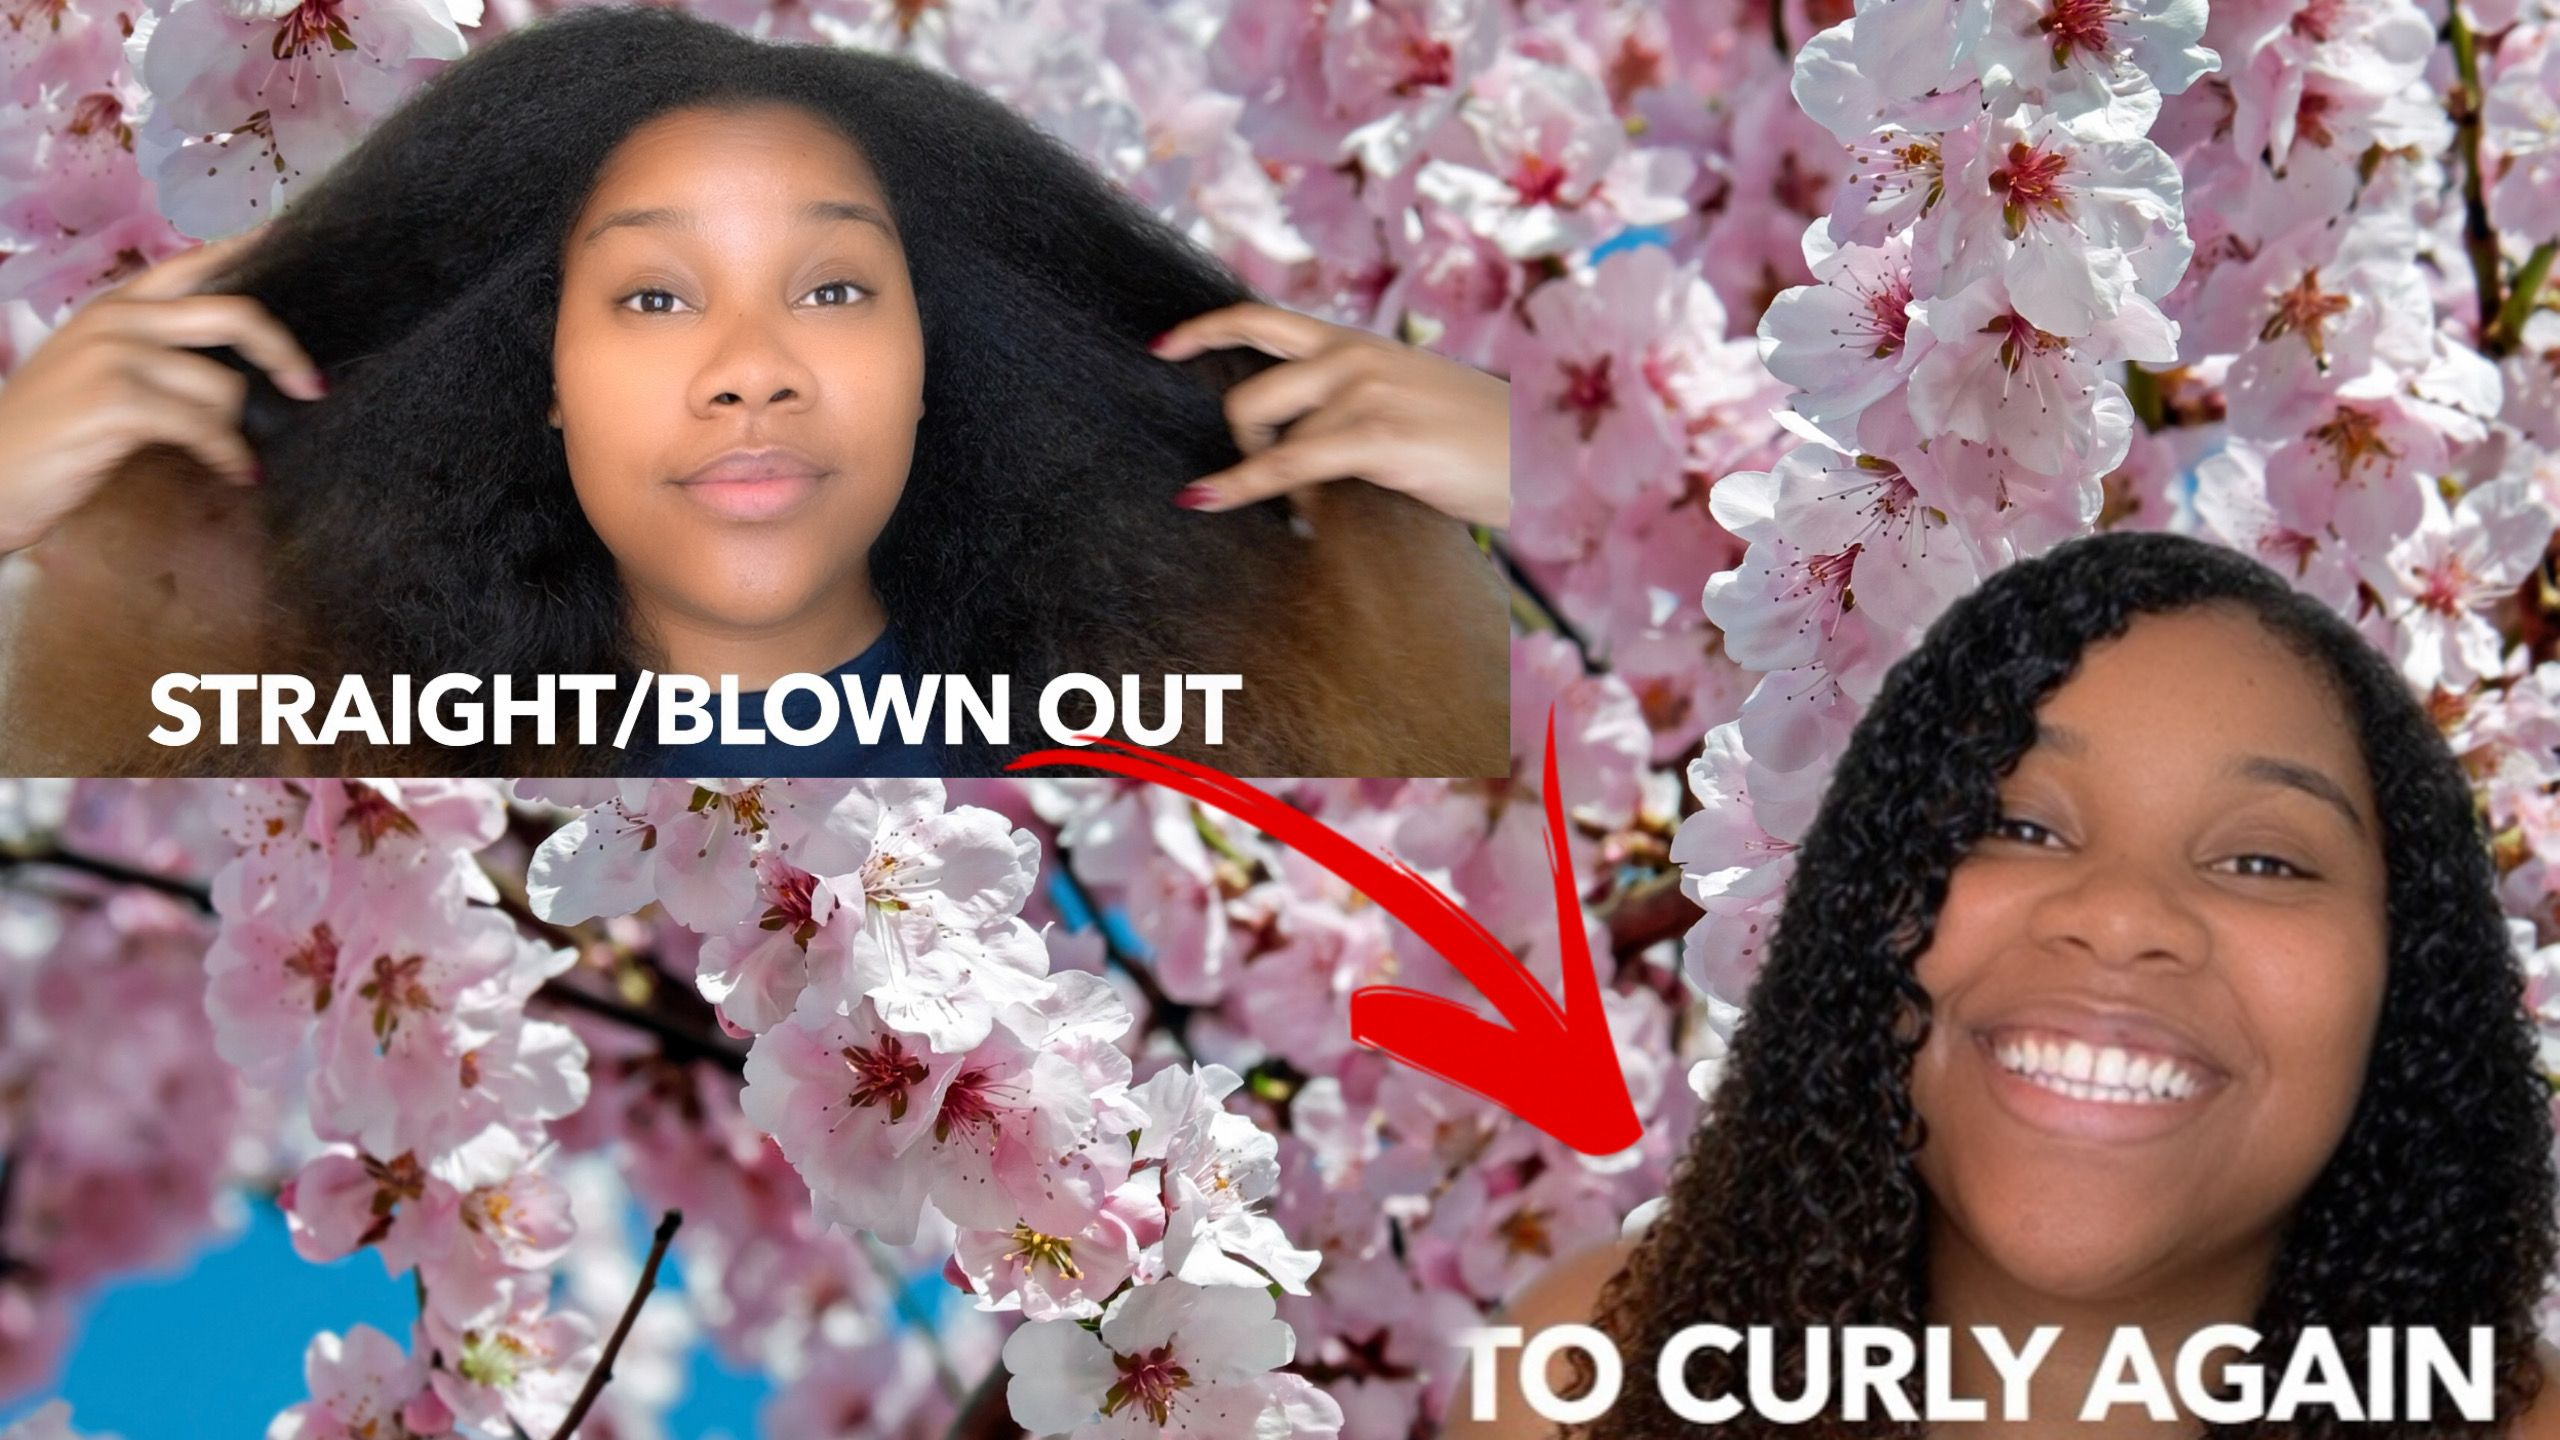 Getting my curls back! Hydration, scalp scrubs & more! #curls #curlyhair #straighttocurly #howto #ashsetstrends #youtube #beautytips #curly